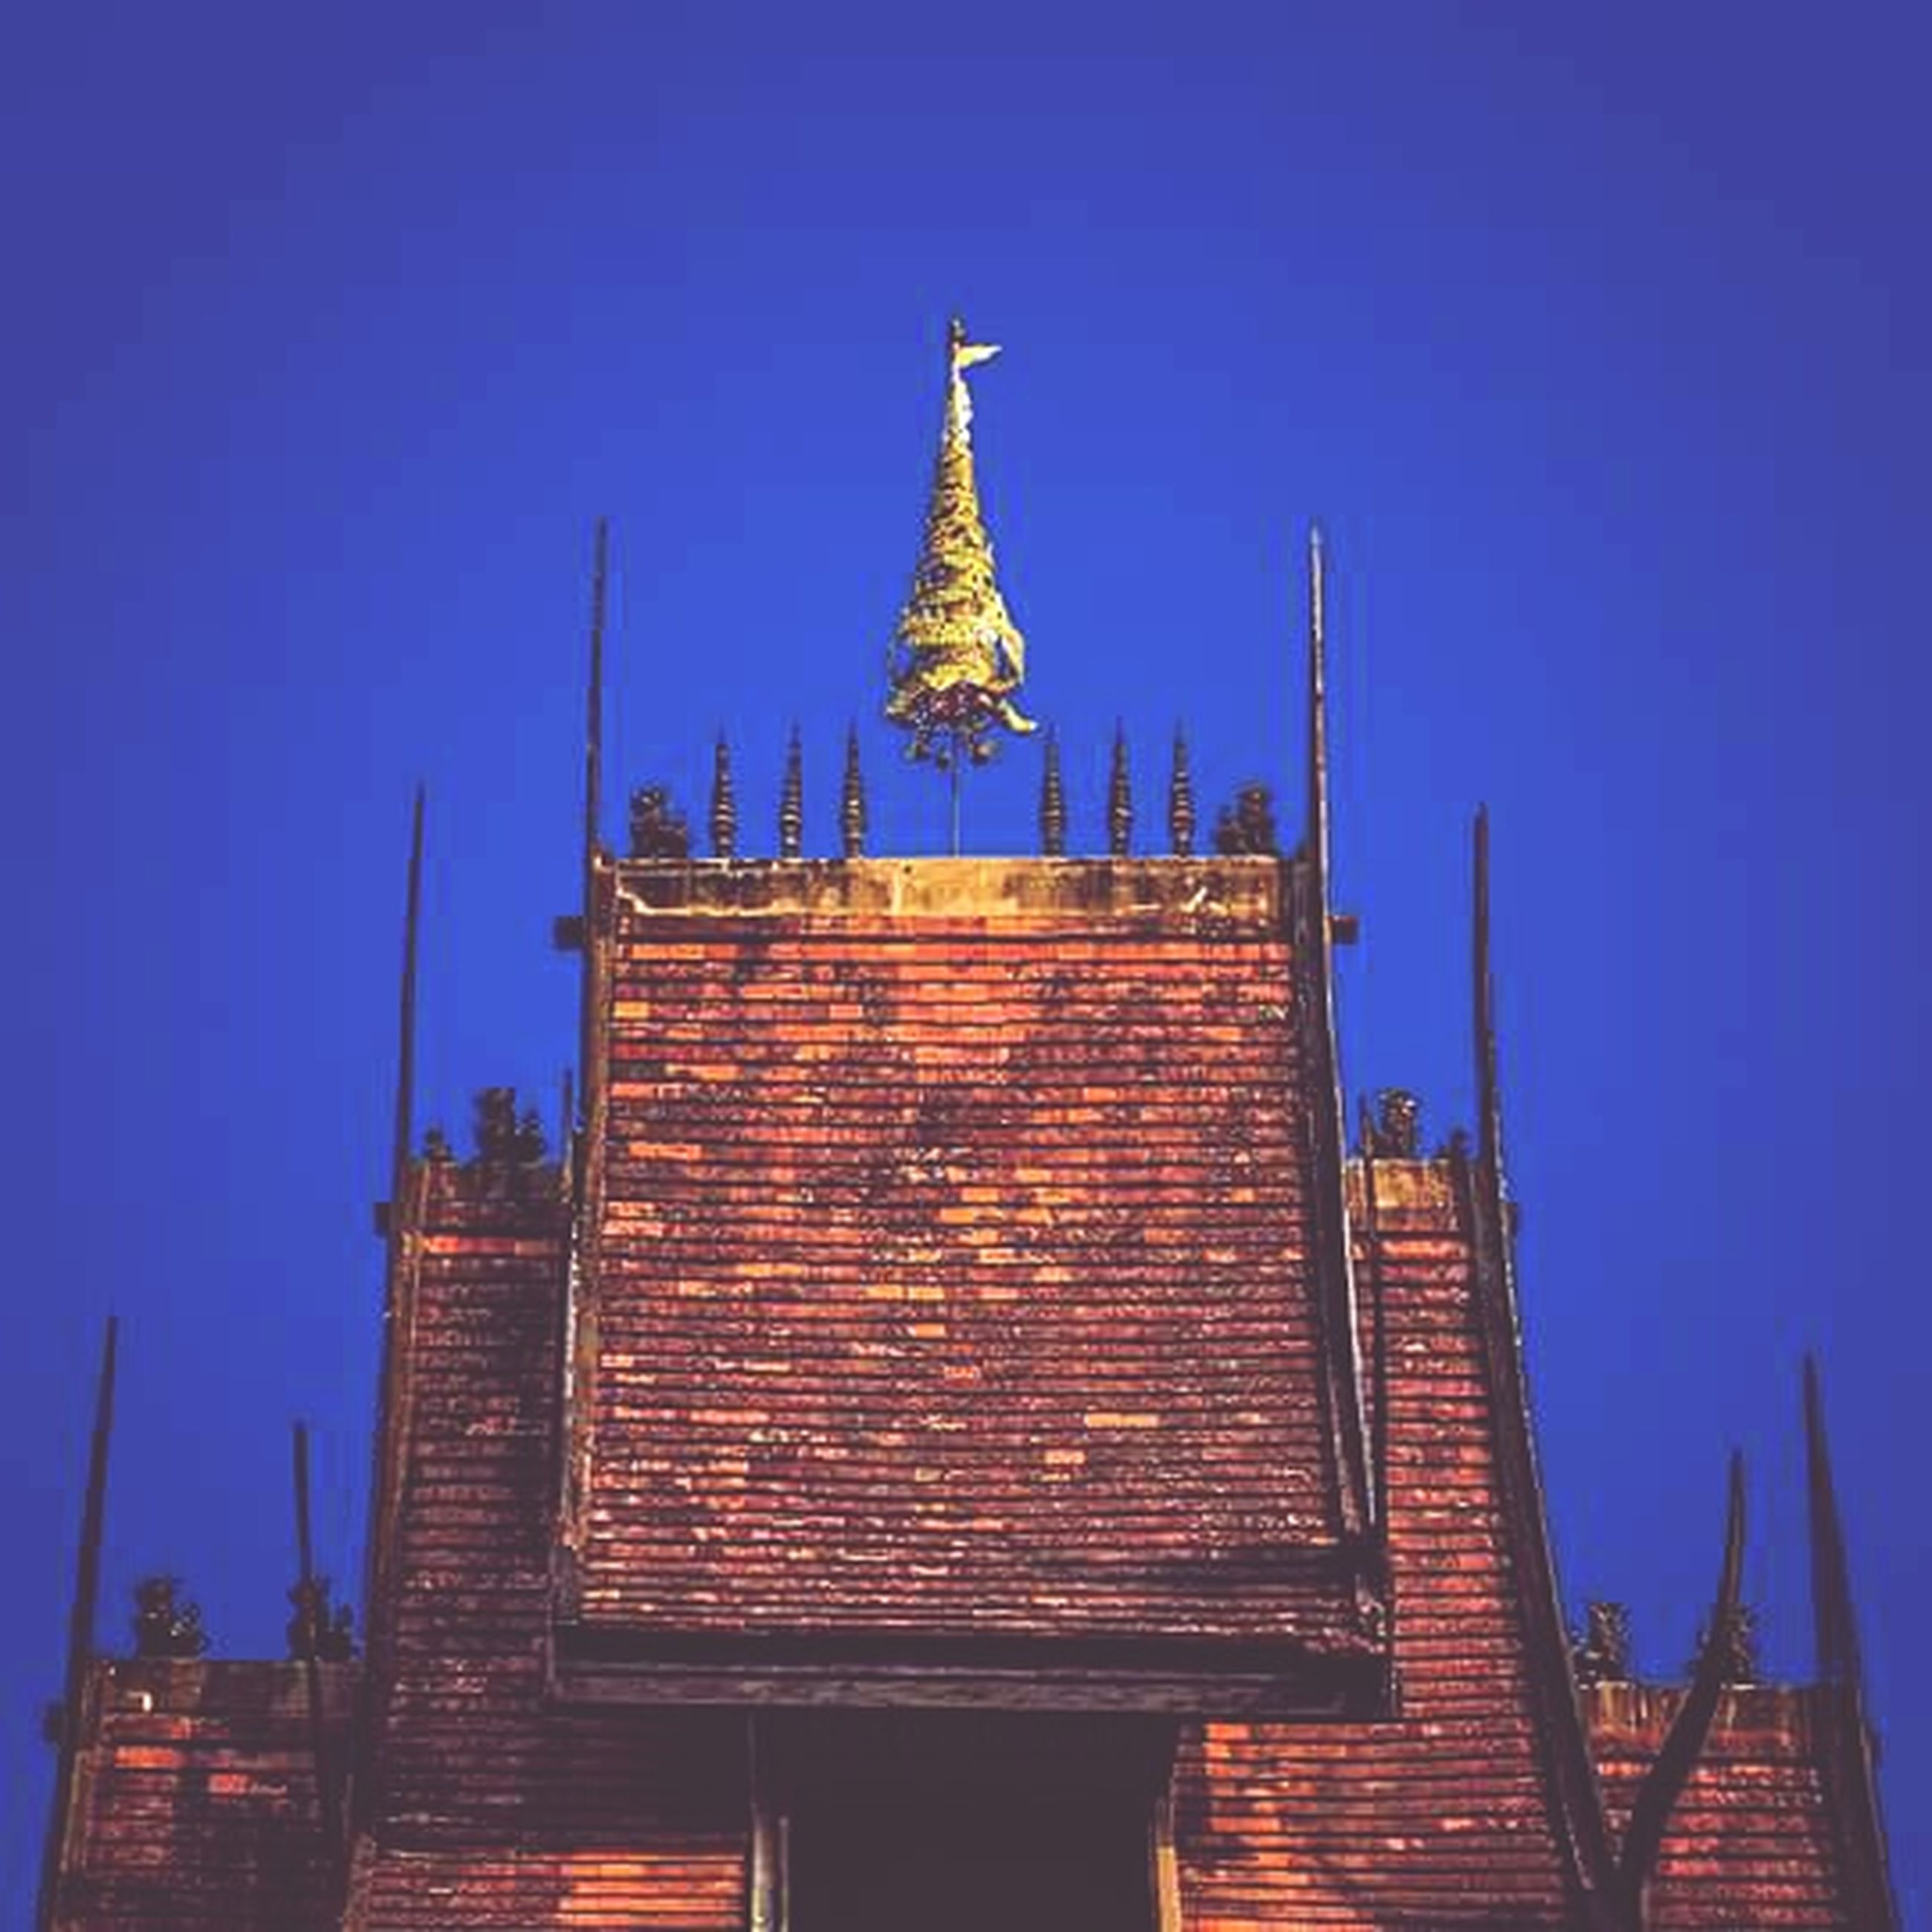 architecture, building exterior, built structure, low angle view, clear sky, blue, place of worship, religion, copy space, spirituality, high section, outdoors, tower, church, sky, roof, no people, day, building